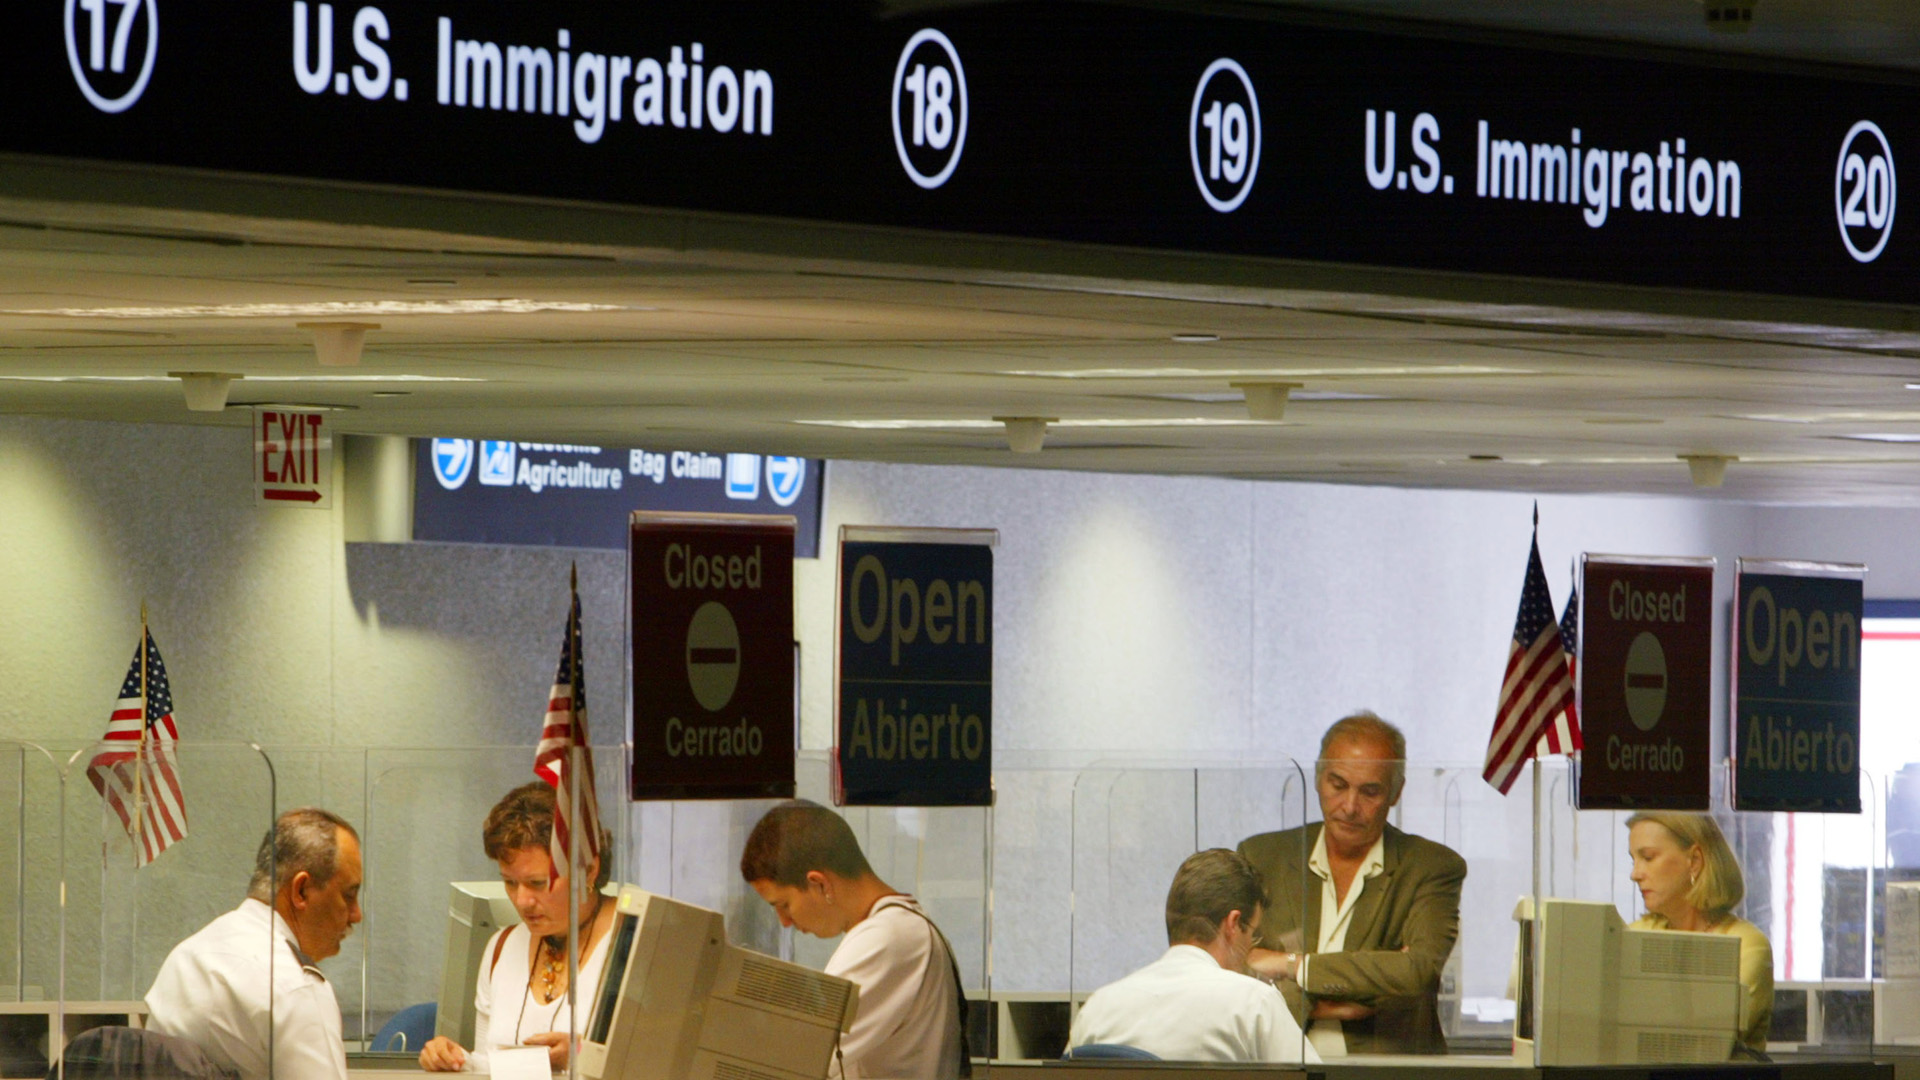 U.S. Immigration inspectors check passports July 2, 2002 at Miami International Airport in Miami, Forida. (Credit: Joe Raedle/Getty Images)